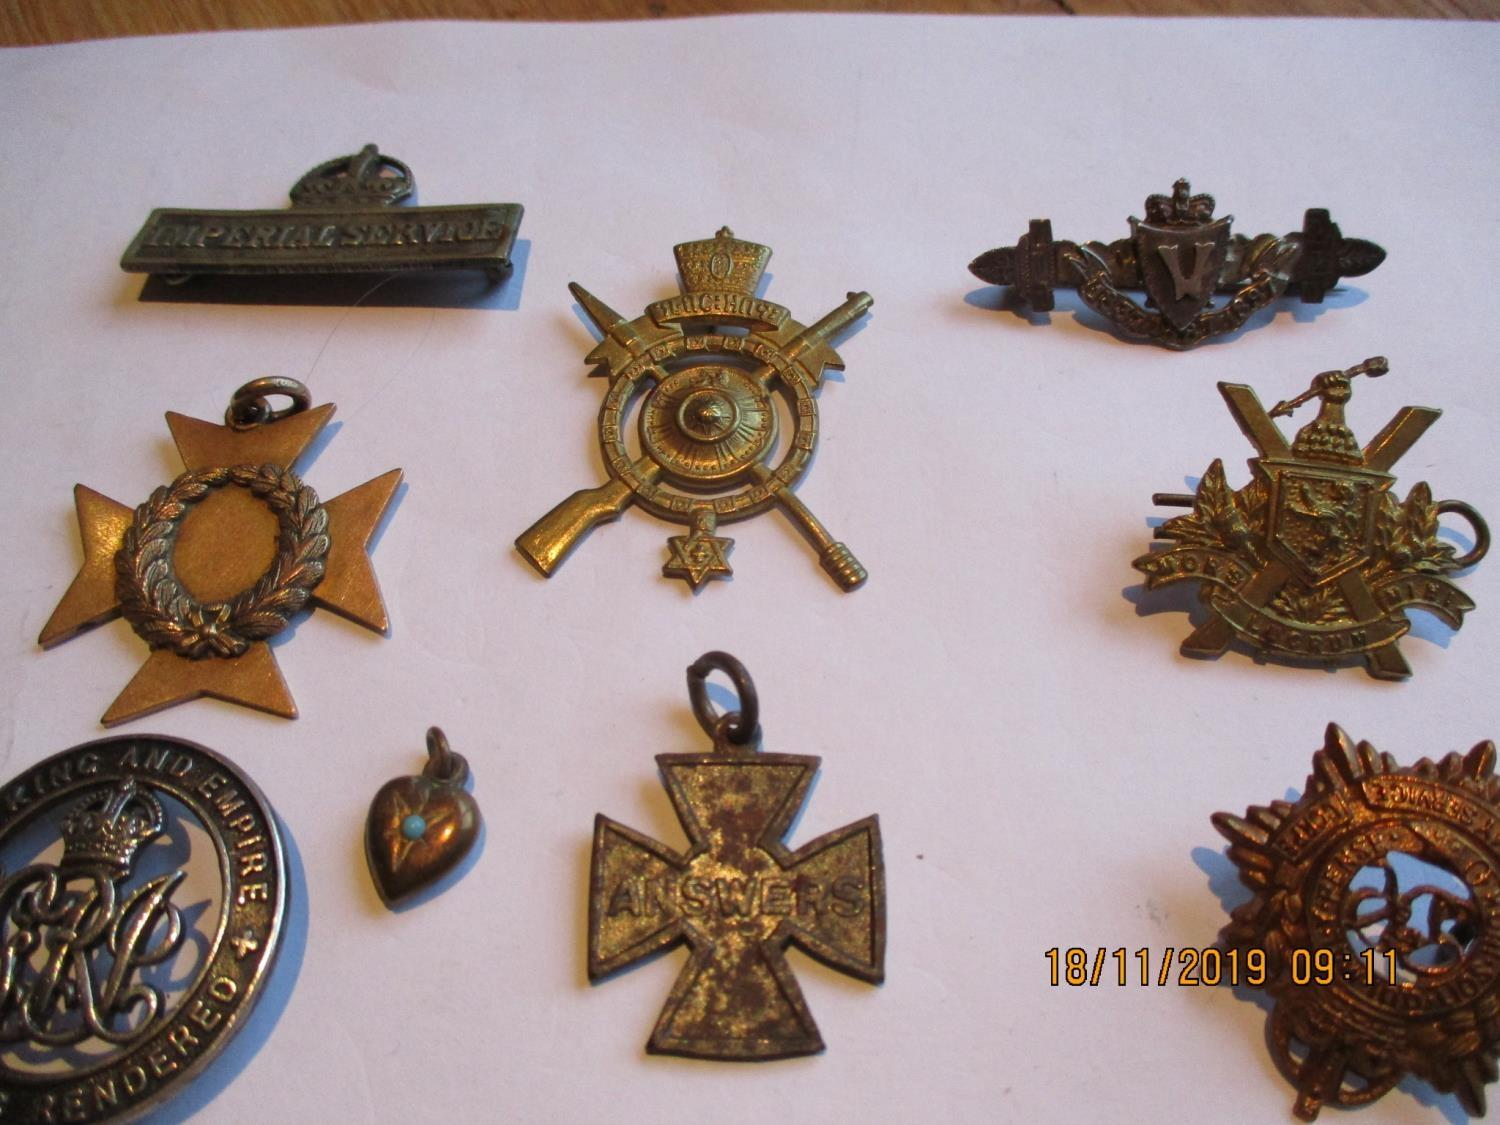 Lot 357 - A campaign medal awarded to Captain F Jeeves, an Imperial Service badge and other badges to